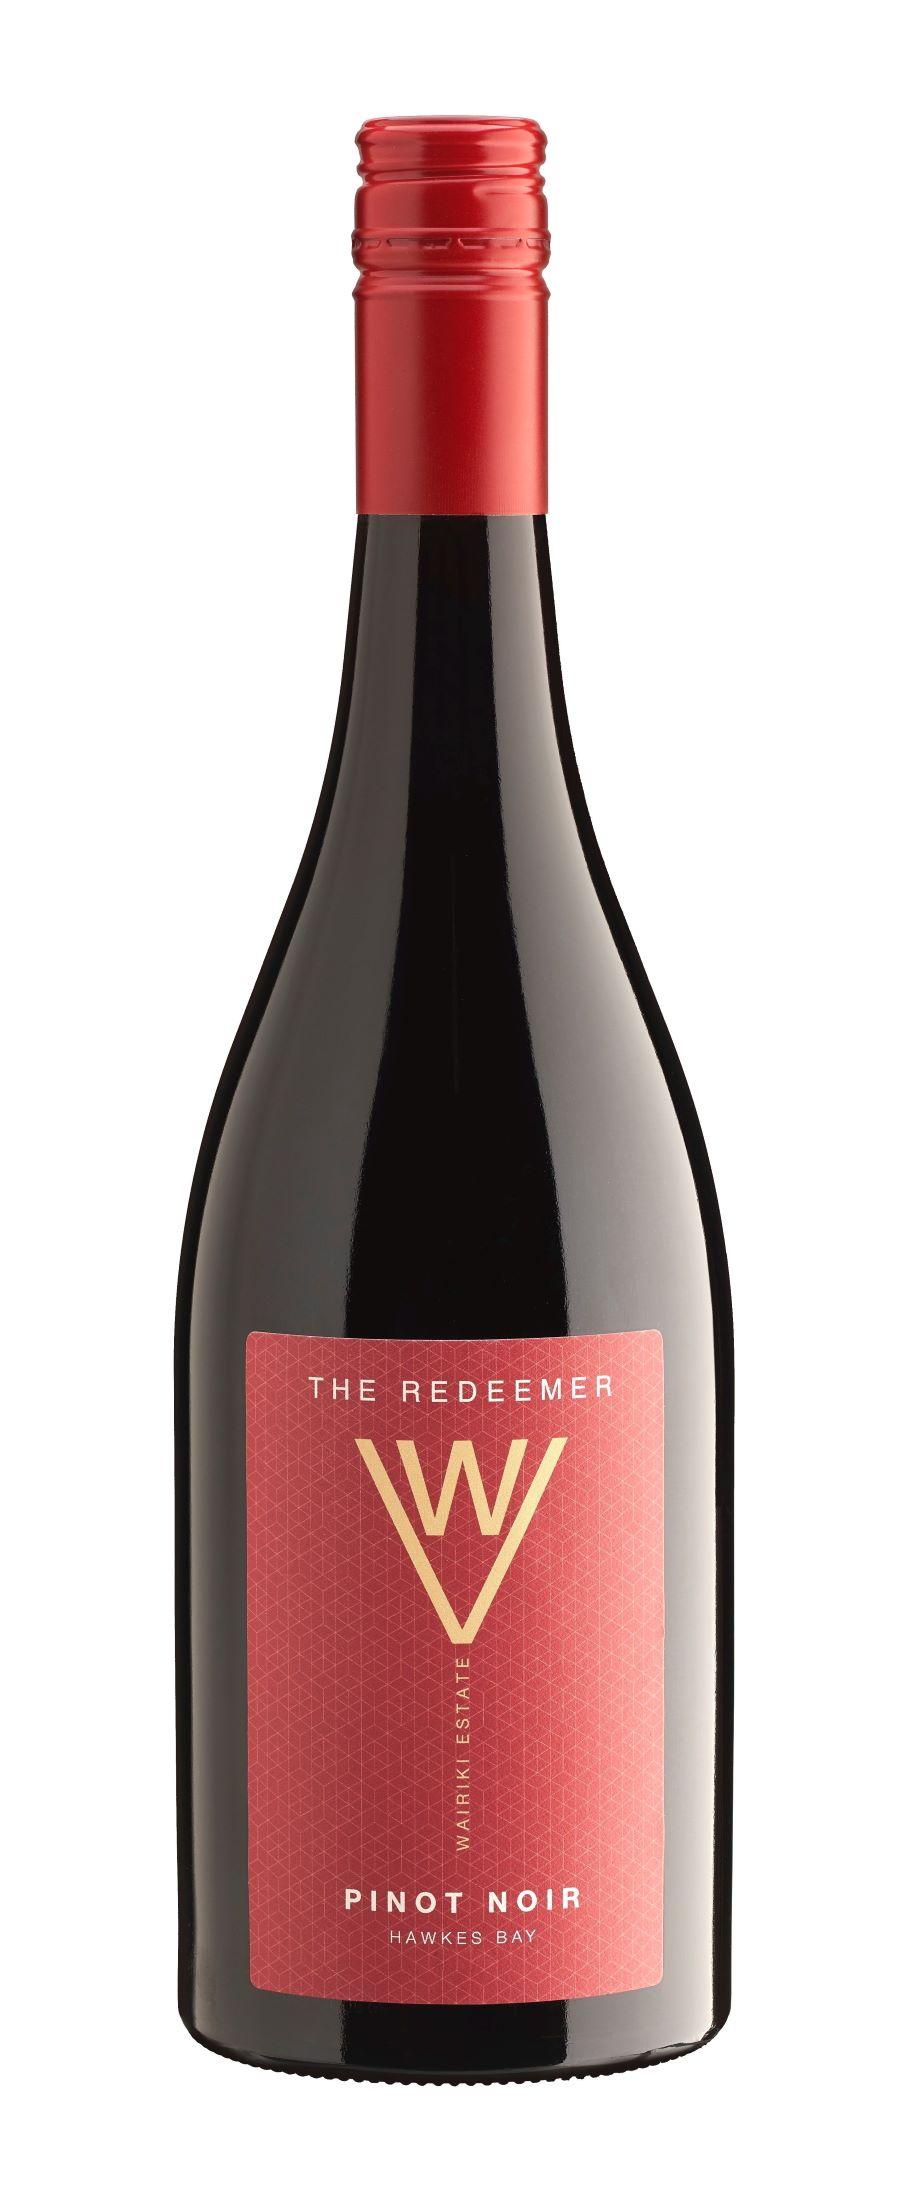 The Redeemer Reserve Pinot Noir 2018